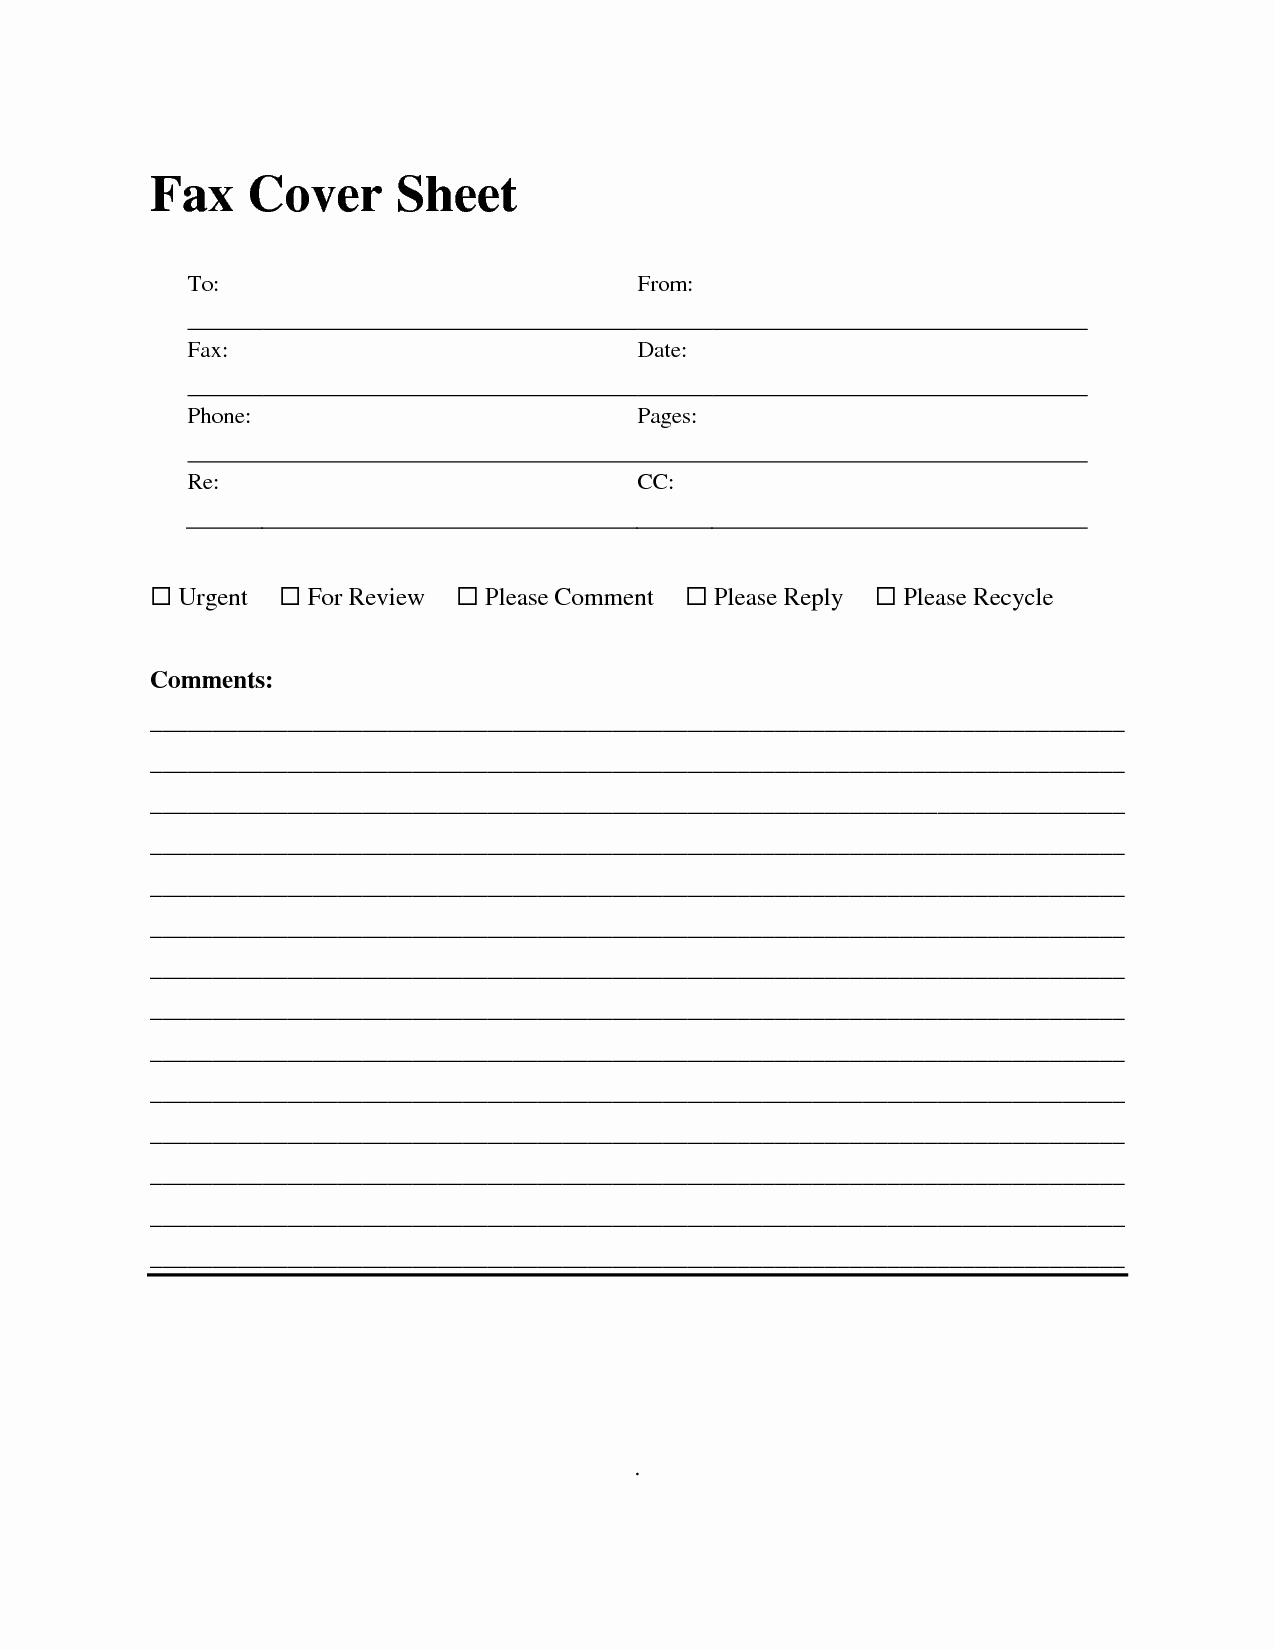 Fax Cover Sheet Sample Template Fresh 10 Best Of Fax Cover Page Template Fax Cover